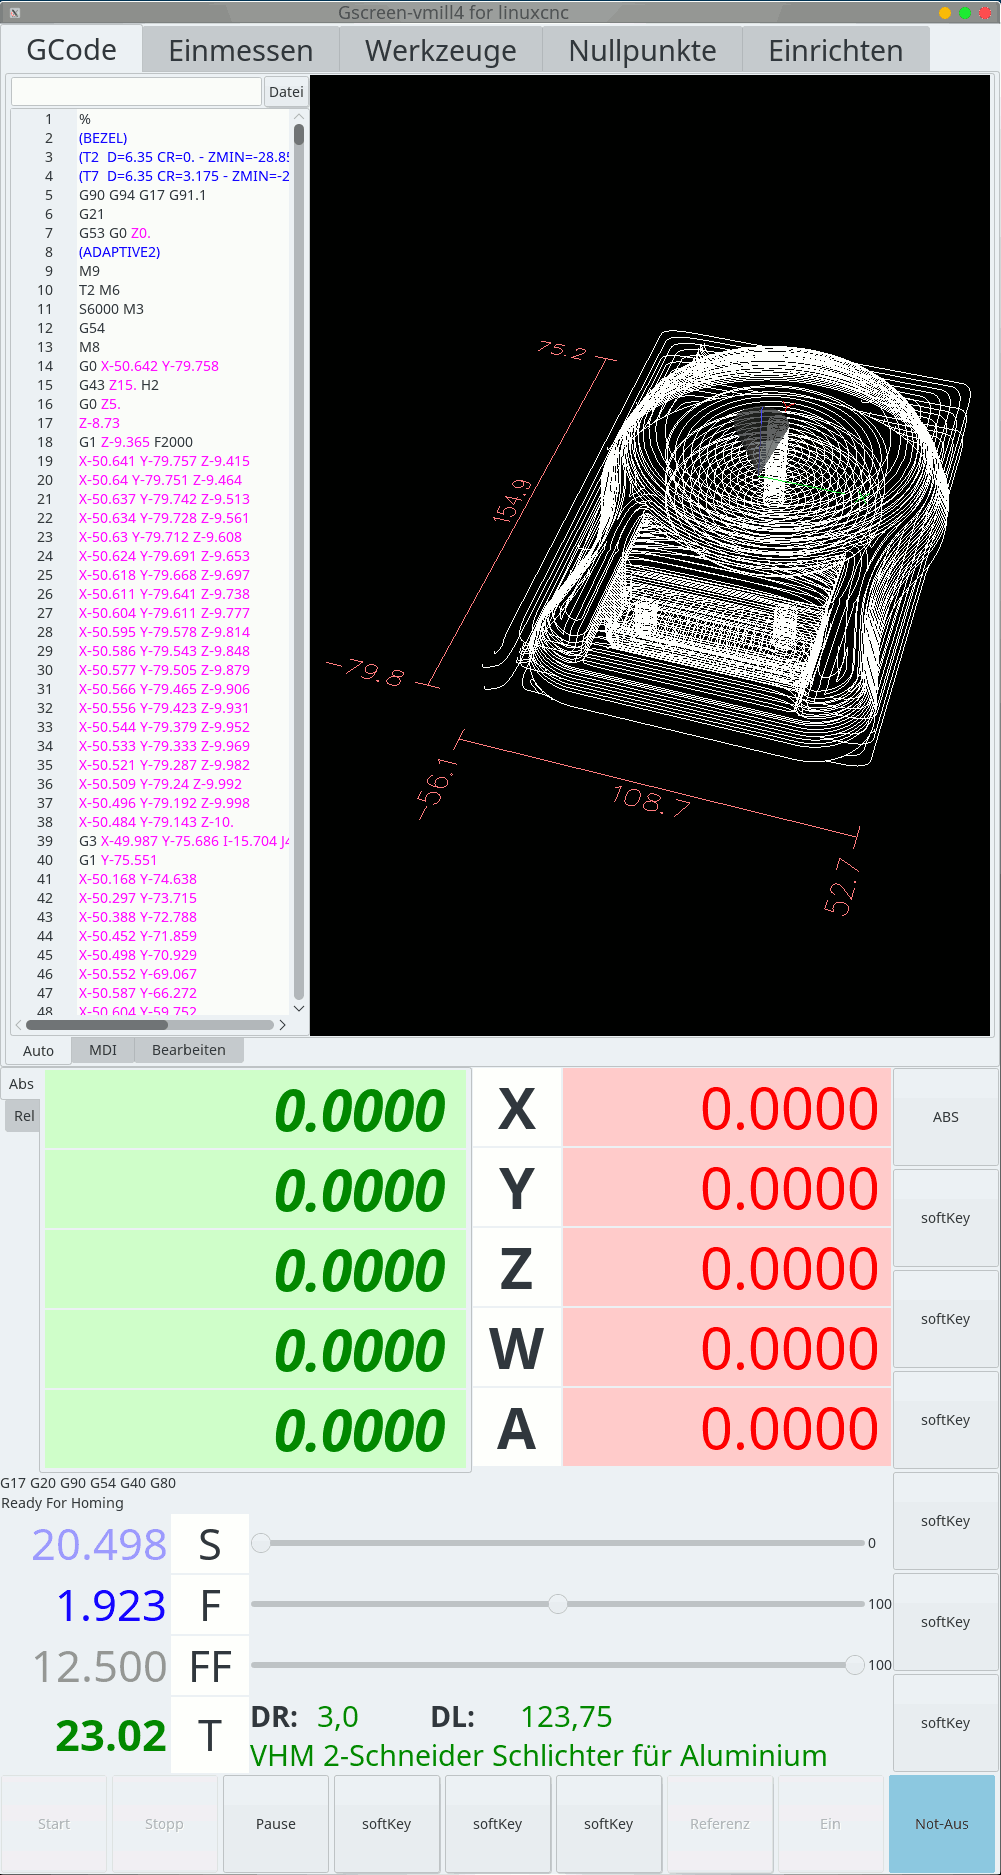 LinuxCNC-Abs_01.png